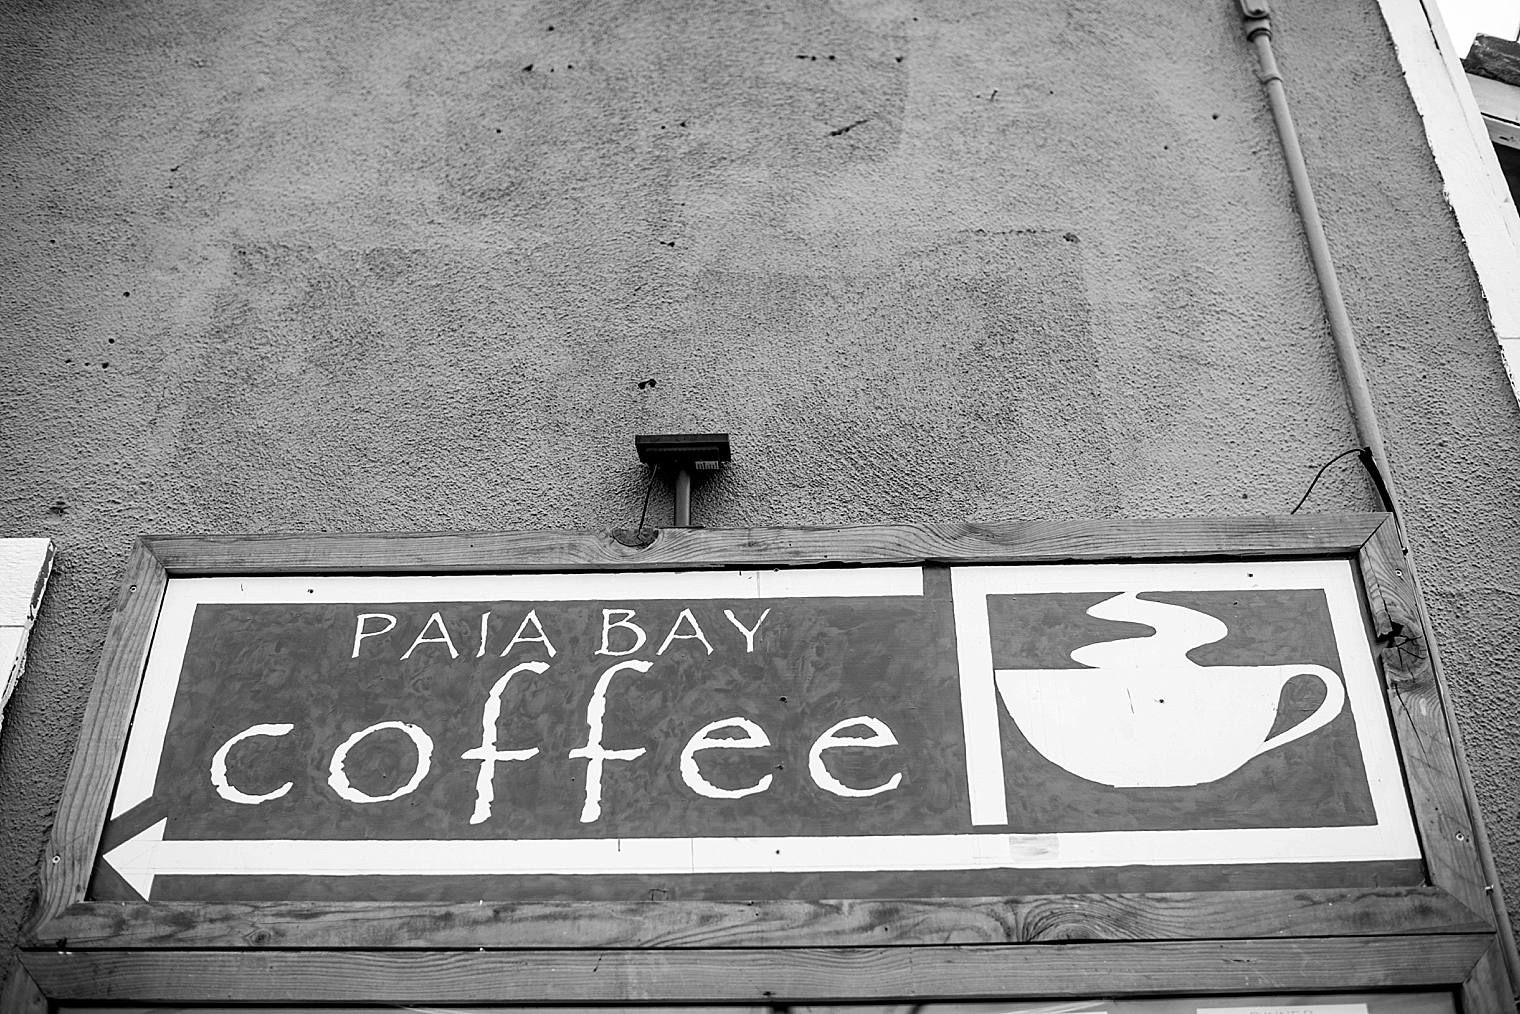 paia Bay Coffee sign